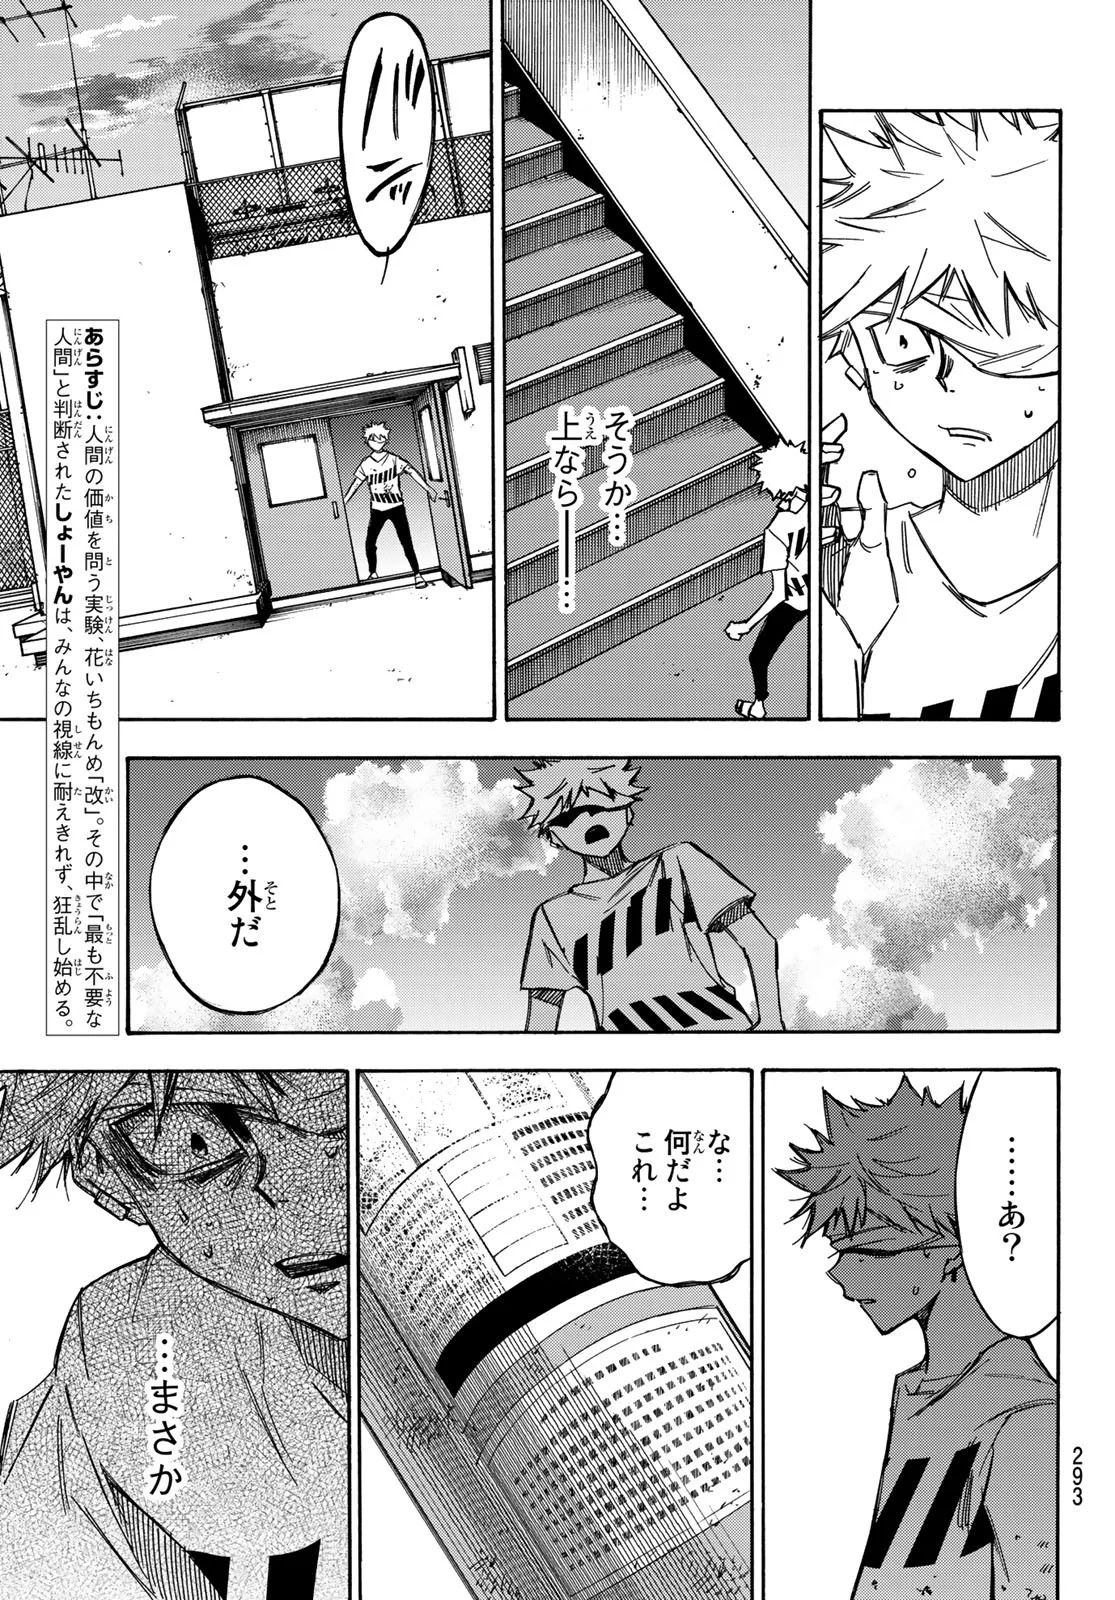 Manga Raw Nare no hate no Bokura Chapter 28